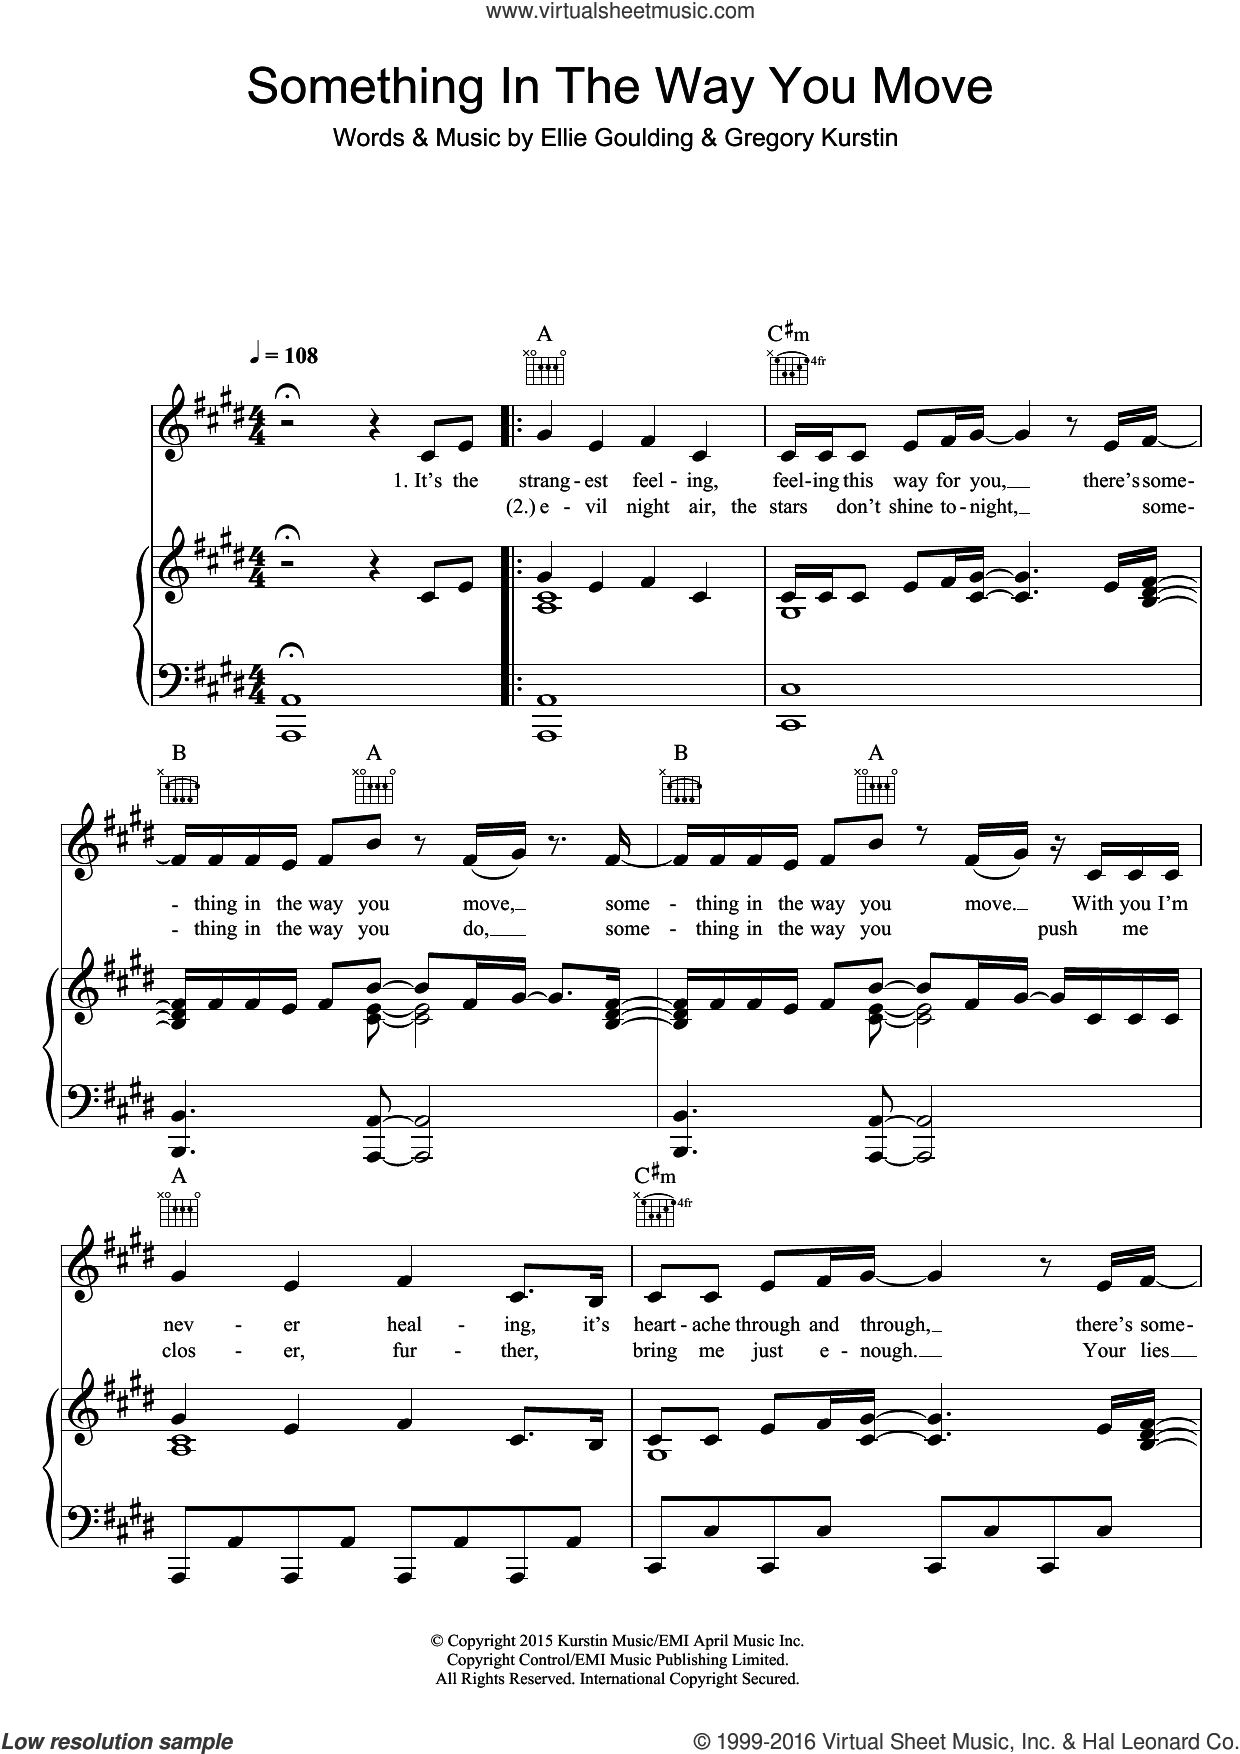 Something In The Way You Move sheet music for voice, piano or guitar by Greg Kurstin